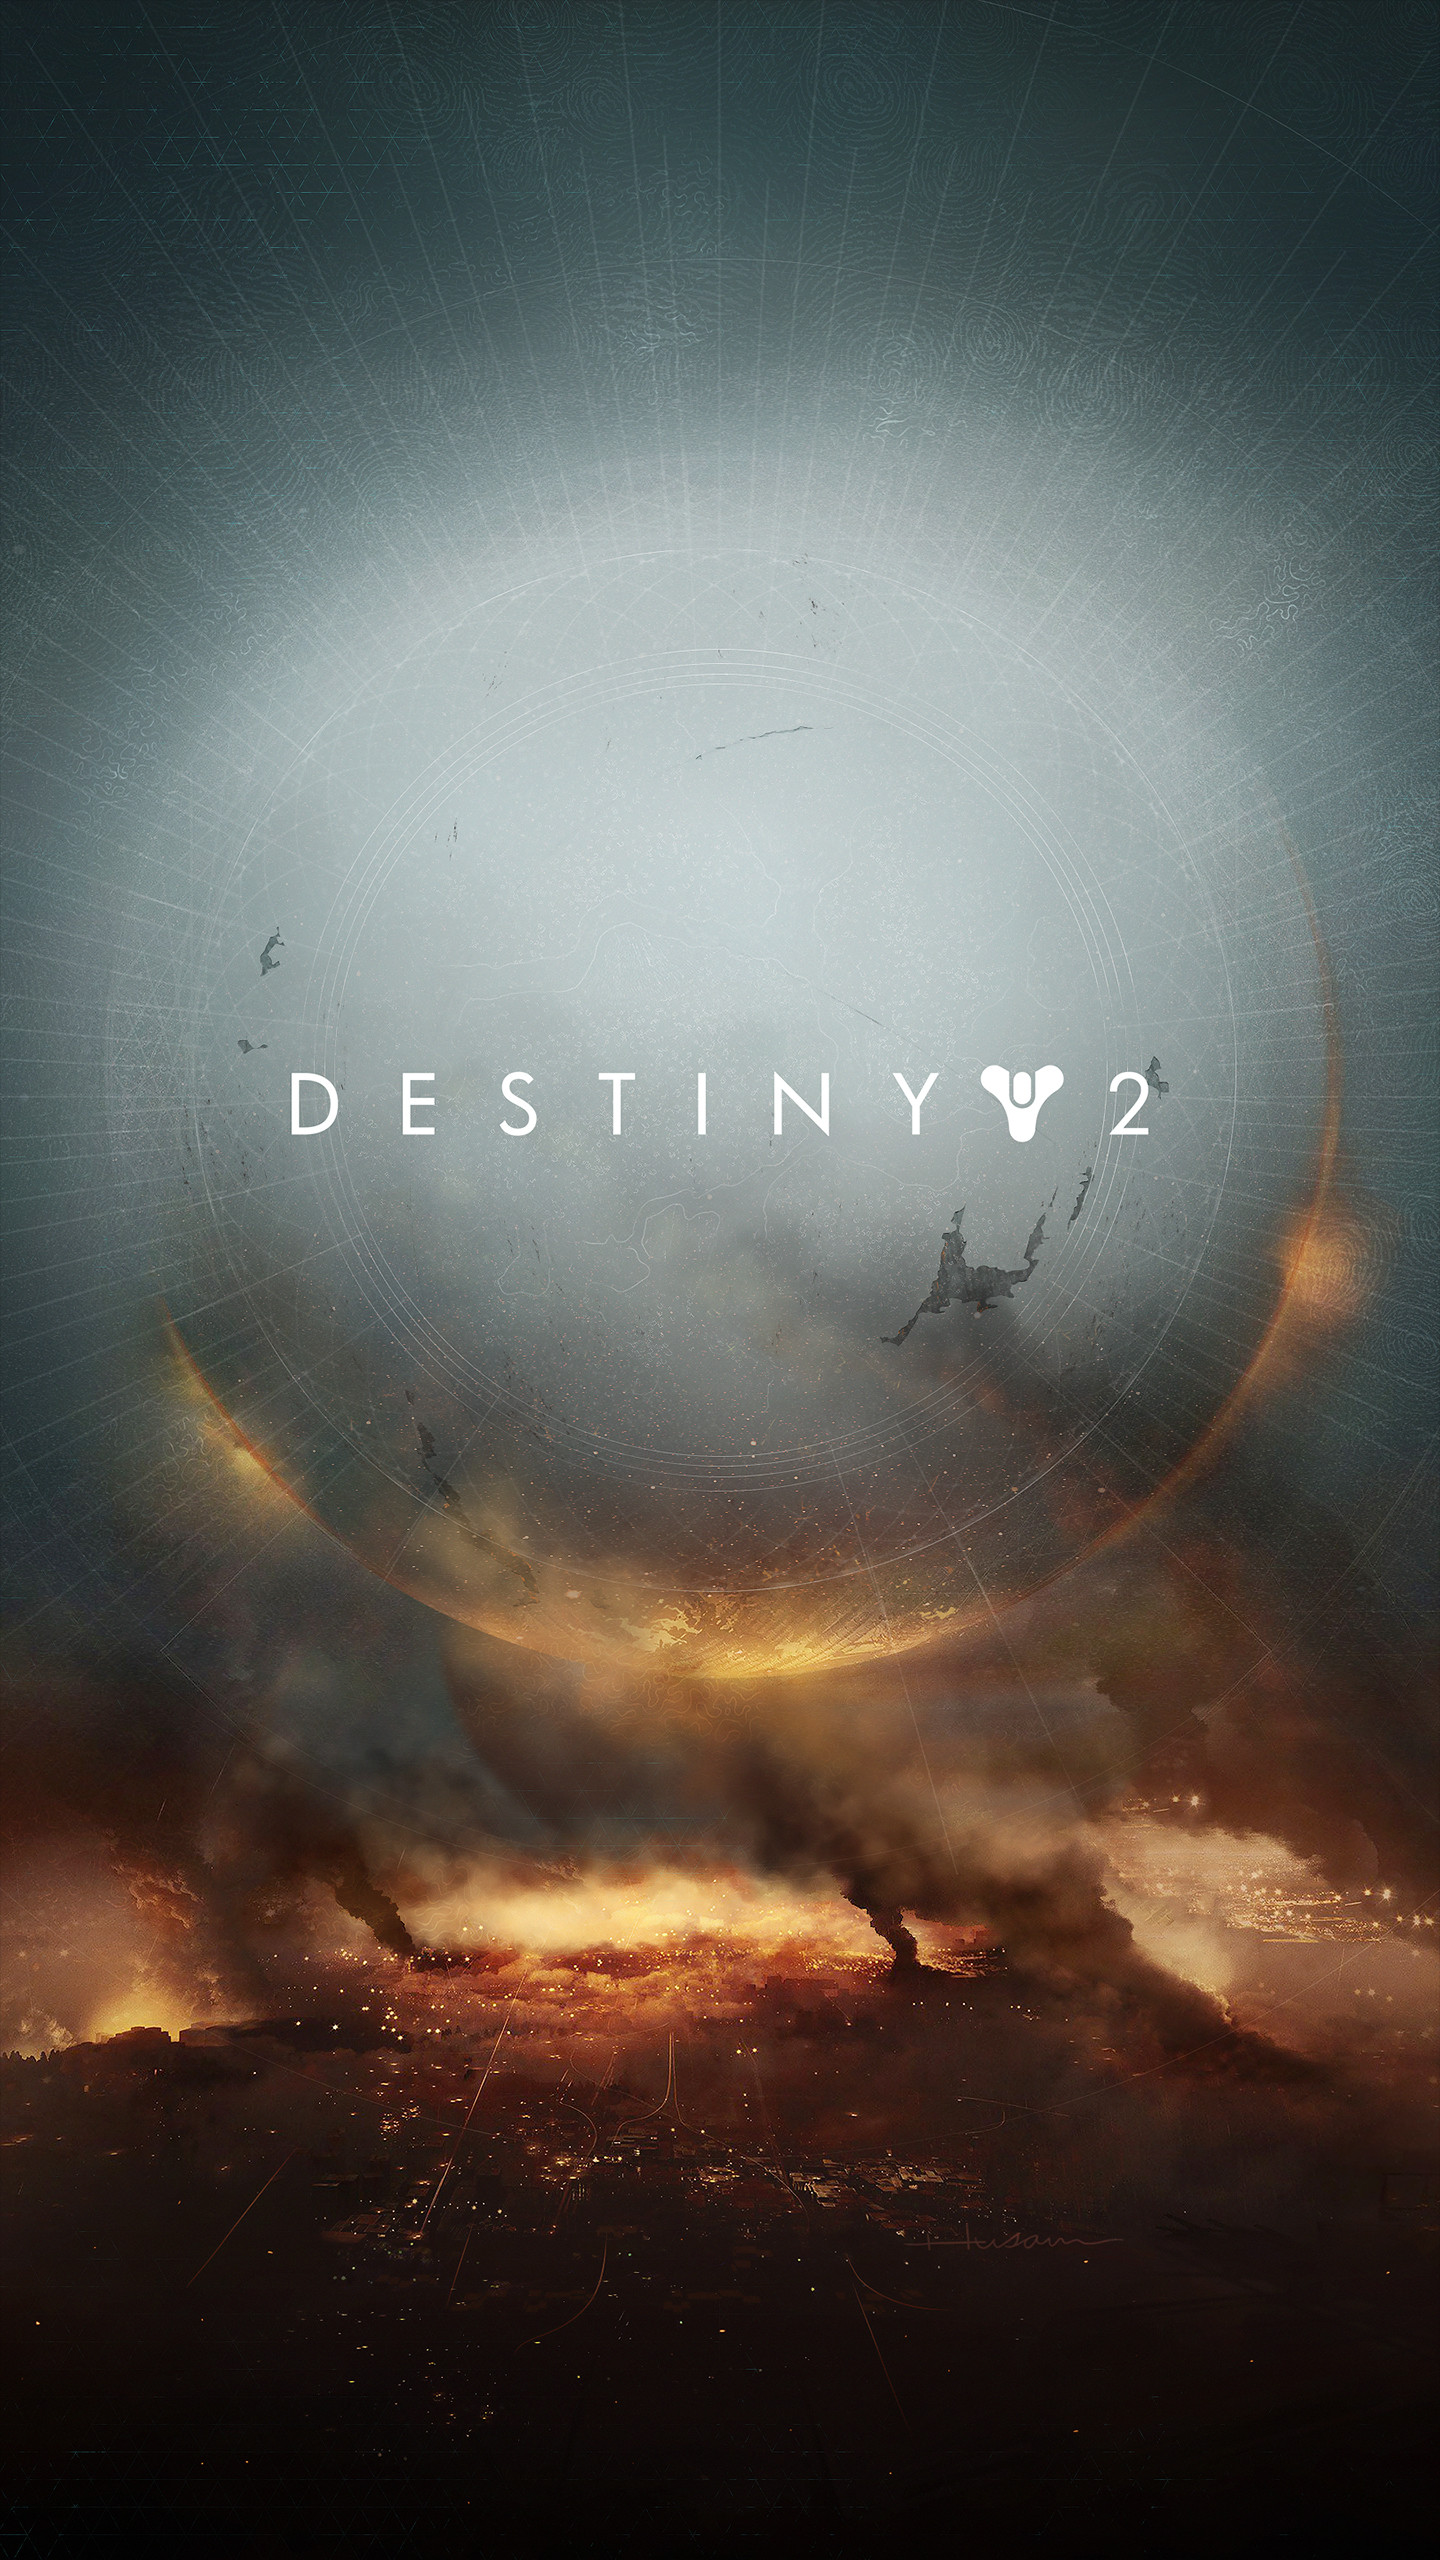 Destiny 2 Wallpaper for your phone